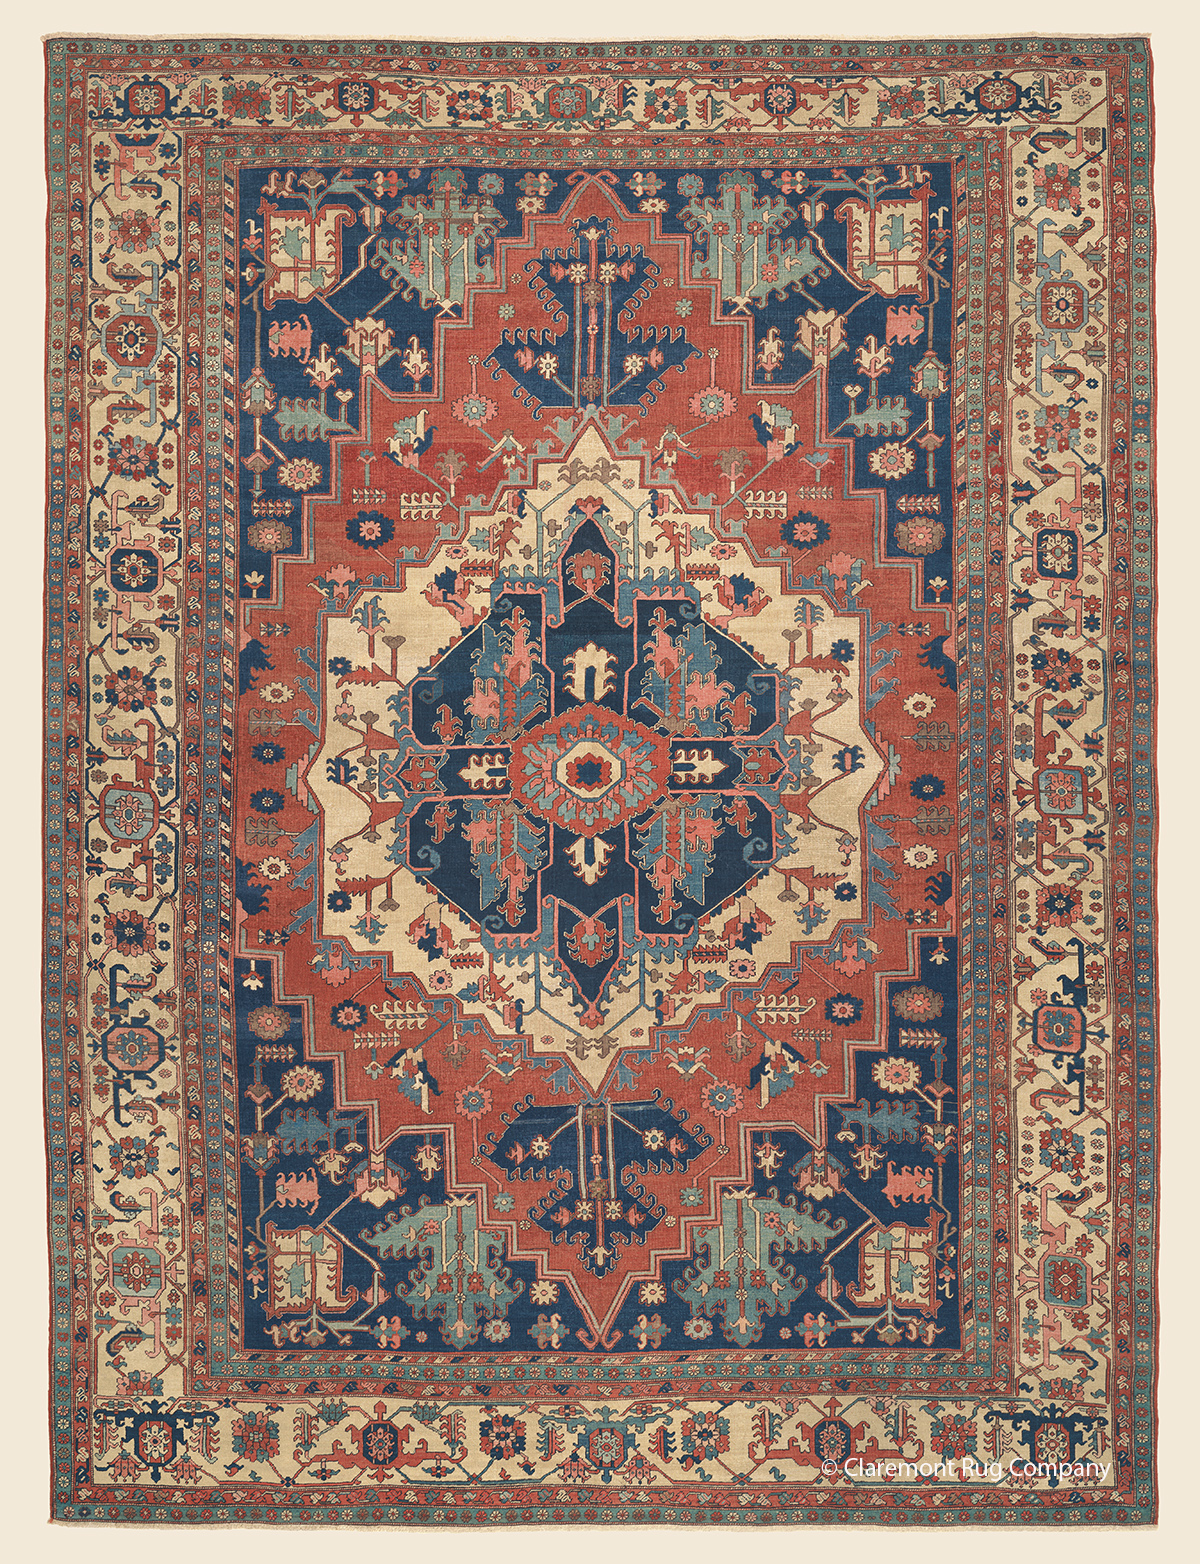 Serapi antique Oriental rug with ivory border and blossom and vine motif on an abrash red reserve